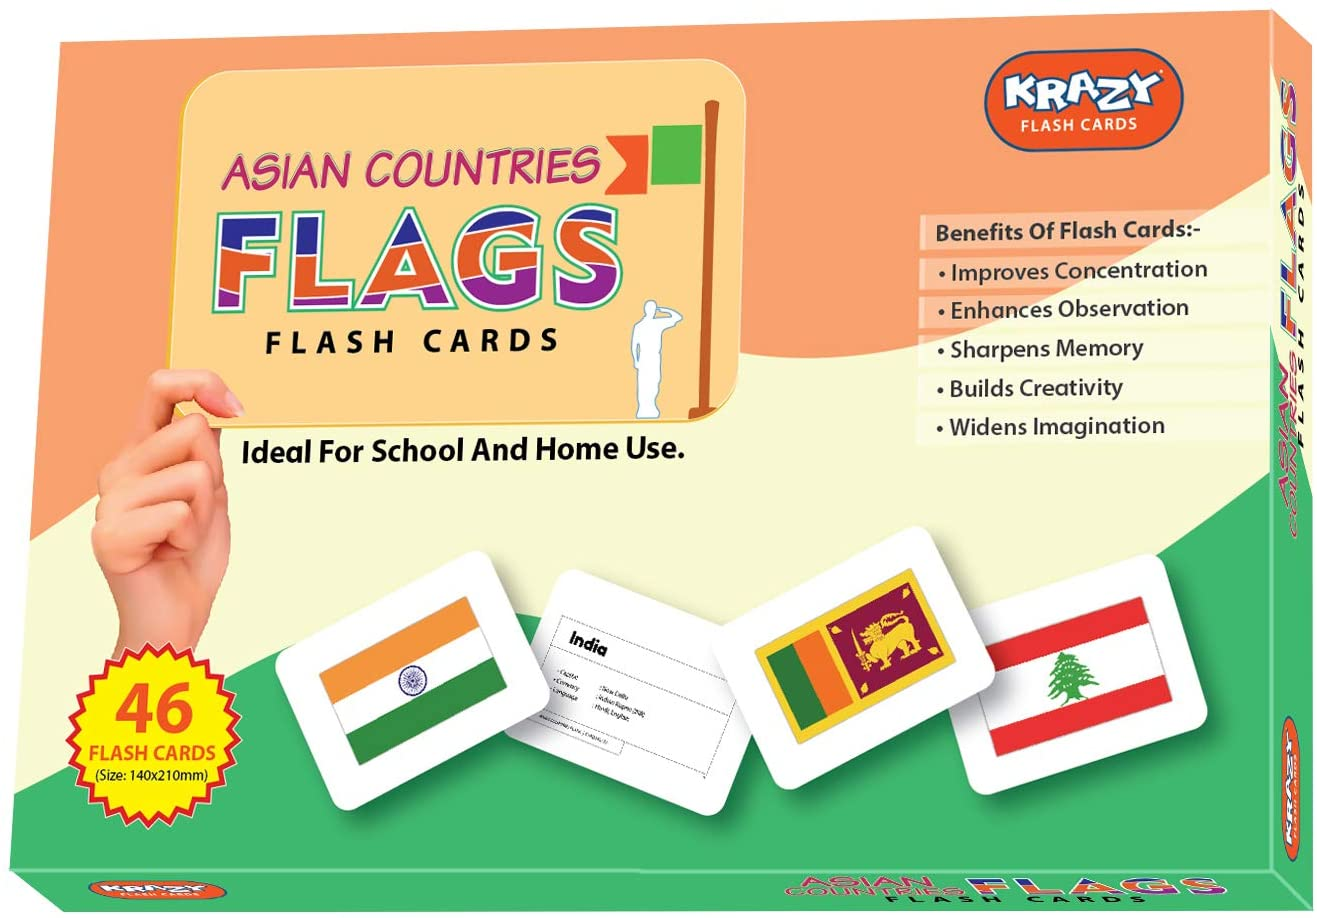 Krazy Educational Flash Cards | Asian Countries Flags | Educational Learning Materials | Play Cards Toys | Board Game for Toddlers, Kids ( Multicolor) (Set 1)